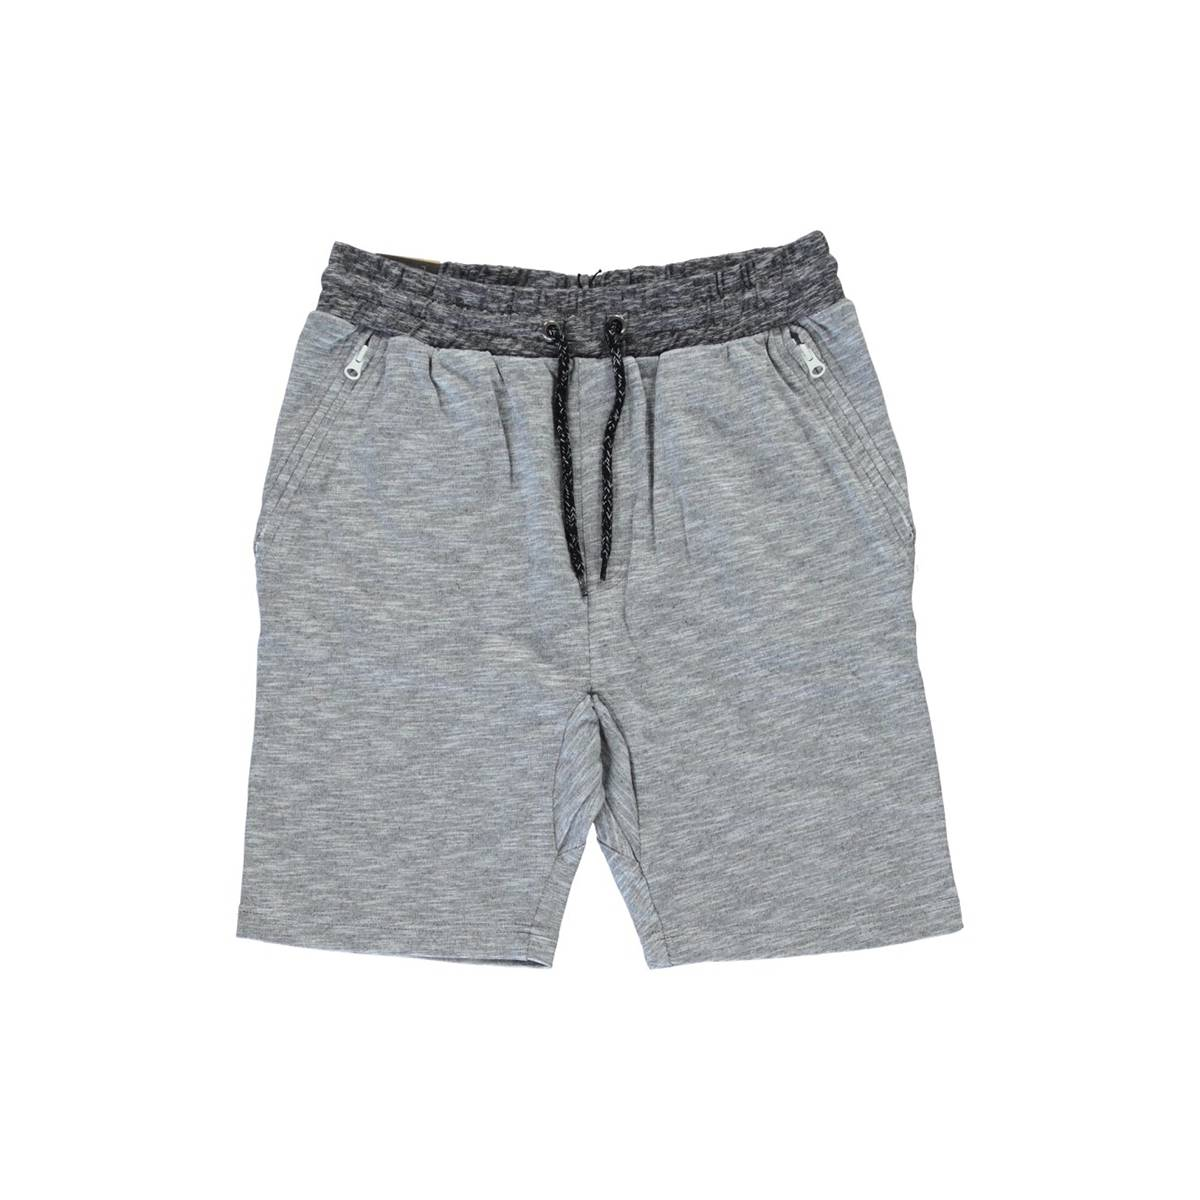 Cars 48898 BEZZA SWEAT SHORT Grijs